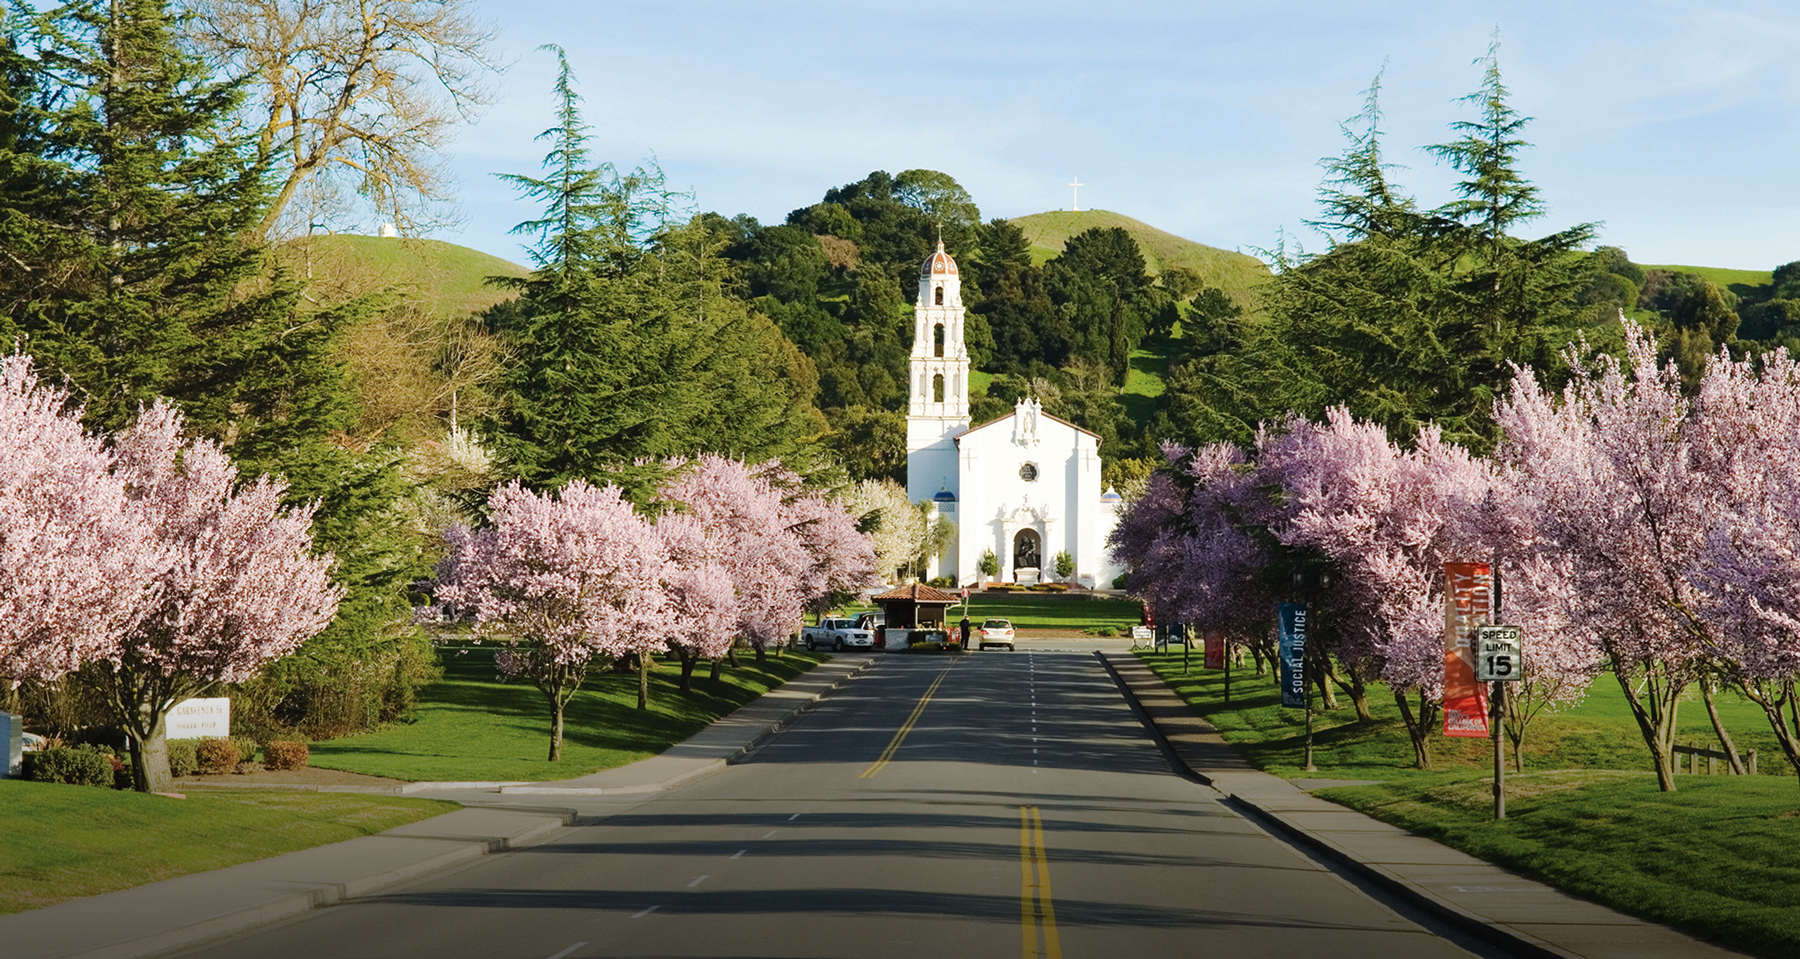 Chapel at the end of the Saint Mary's College entry way where cherry blossoms are in bloom